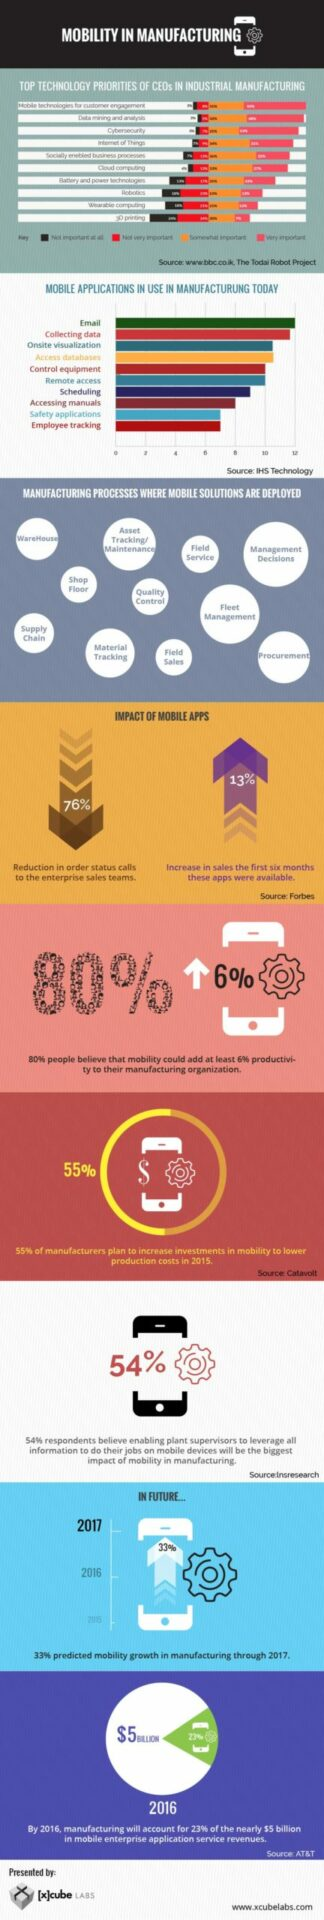 enterprise mobility in manufacturing infographic